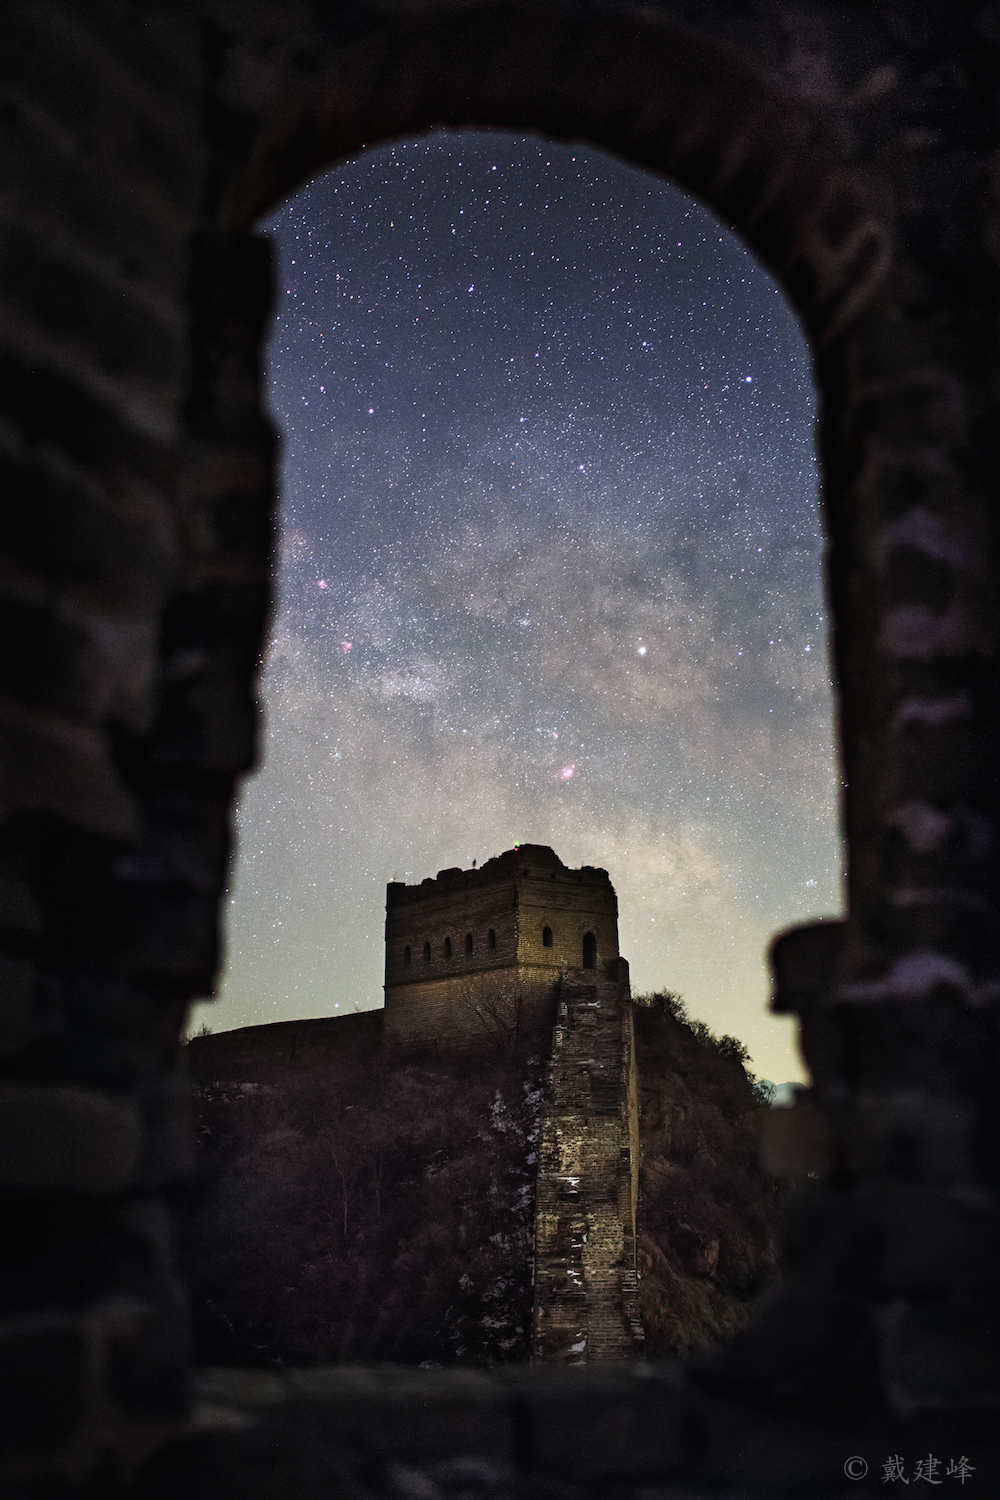 Milky way from a window of the Great Wall.jpg